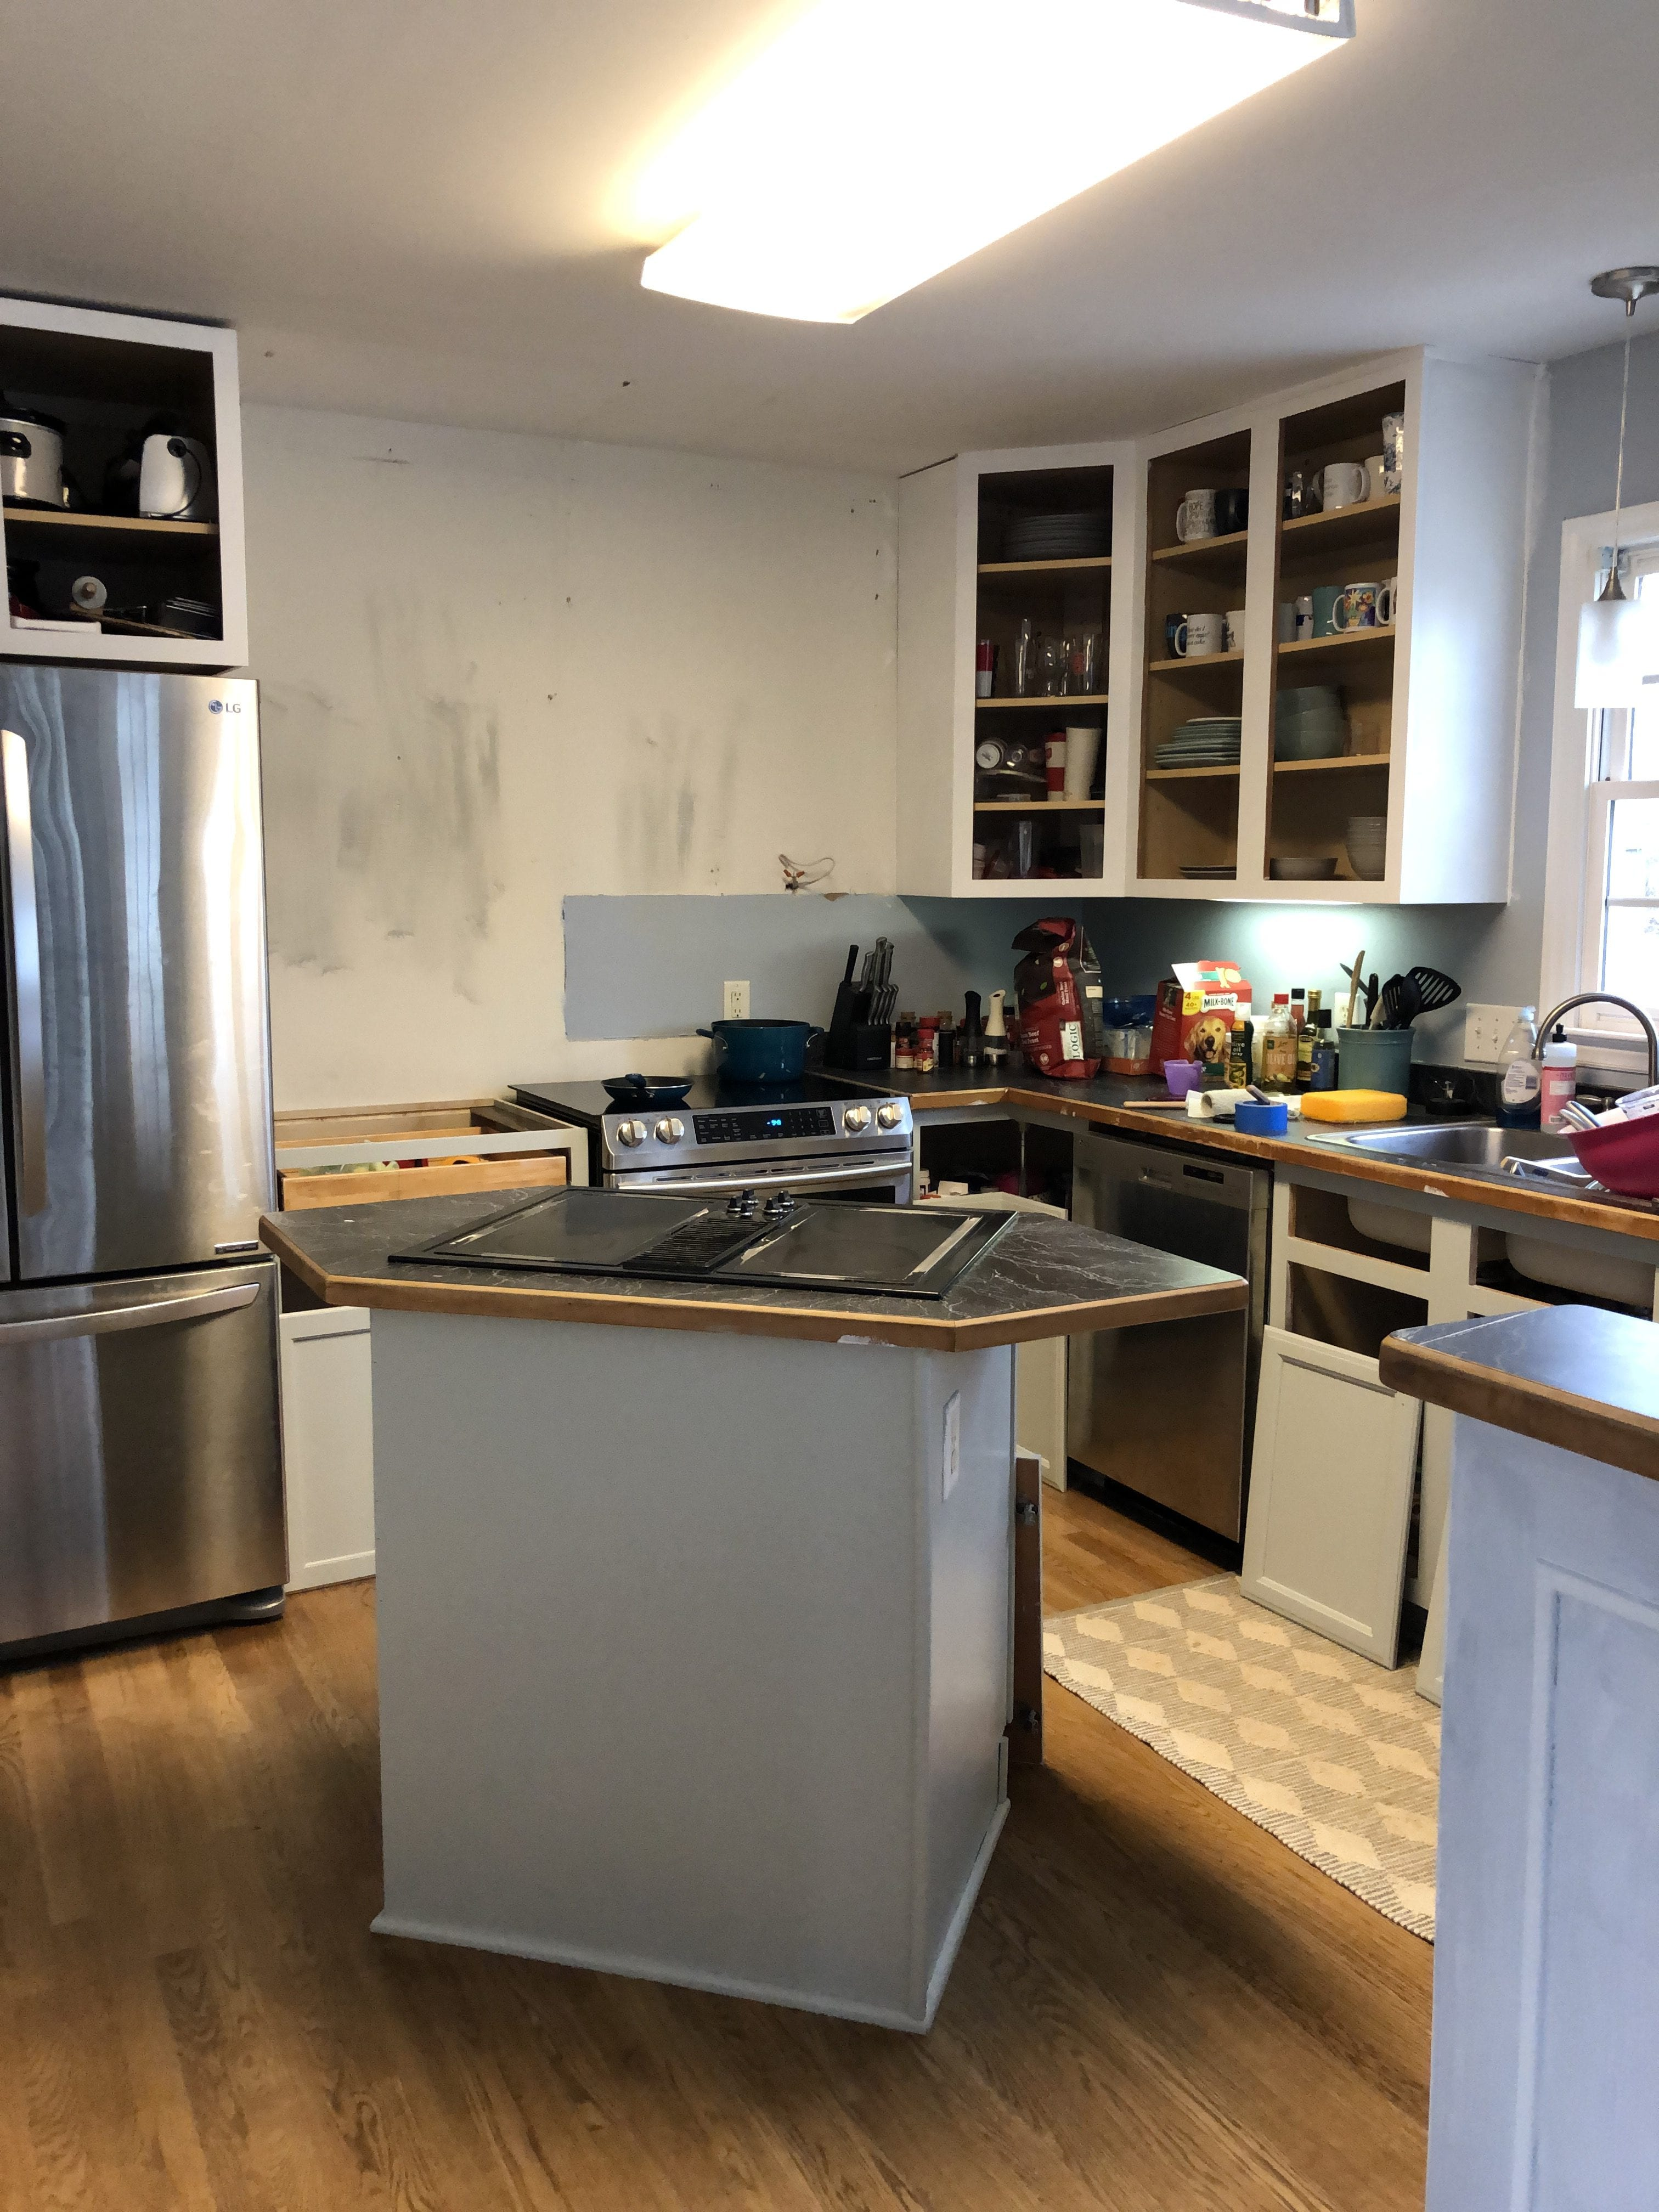 Painting Kitchen Cabinets Yourself - Pretty in the Pines ...